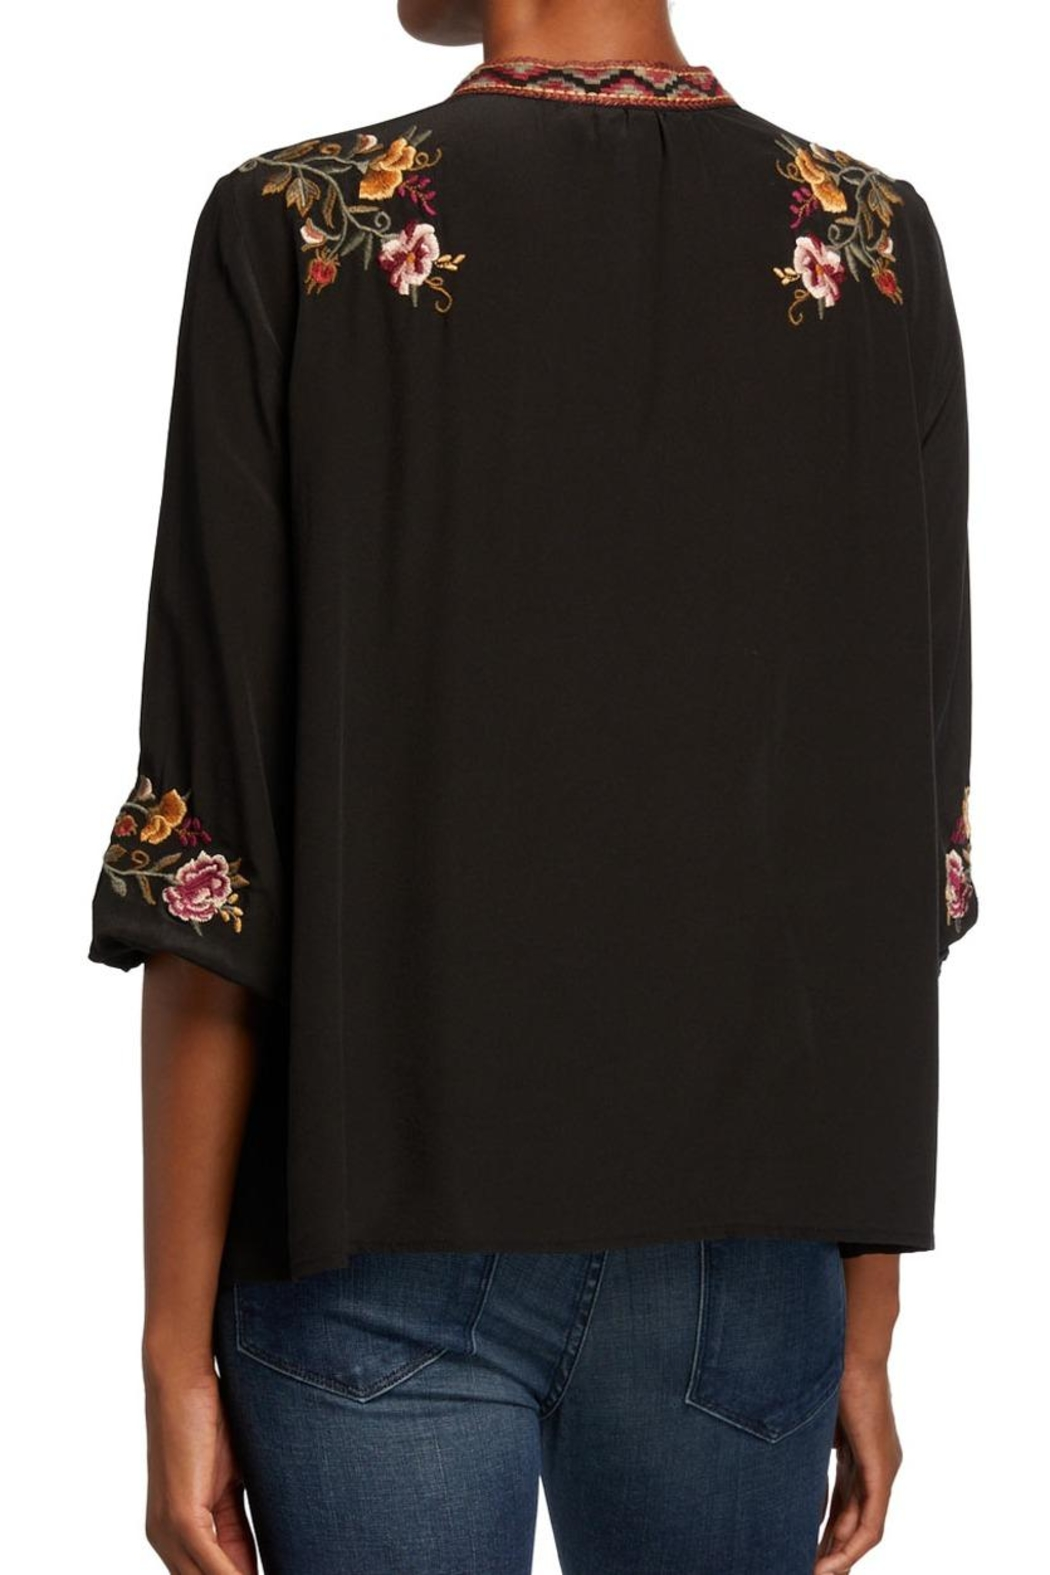 Johnny Was Embroidered Nepal Blouse - Front Full Image